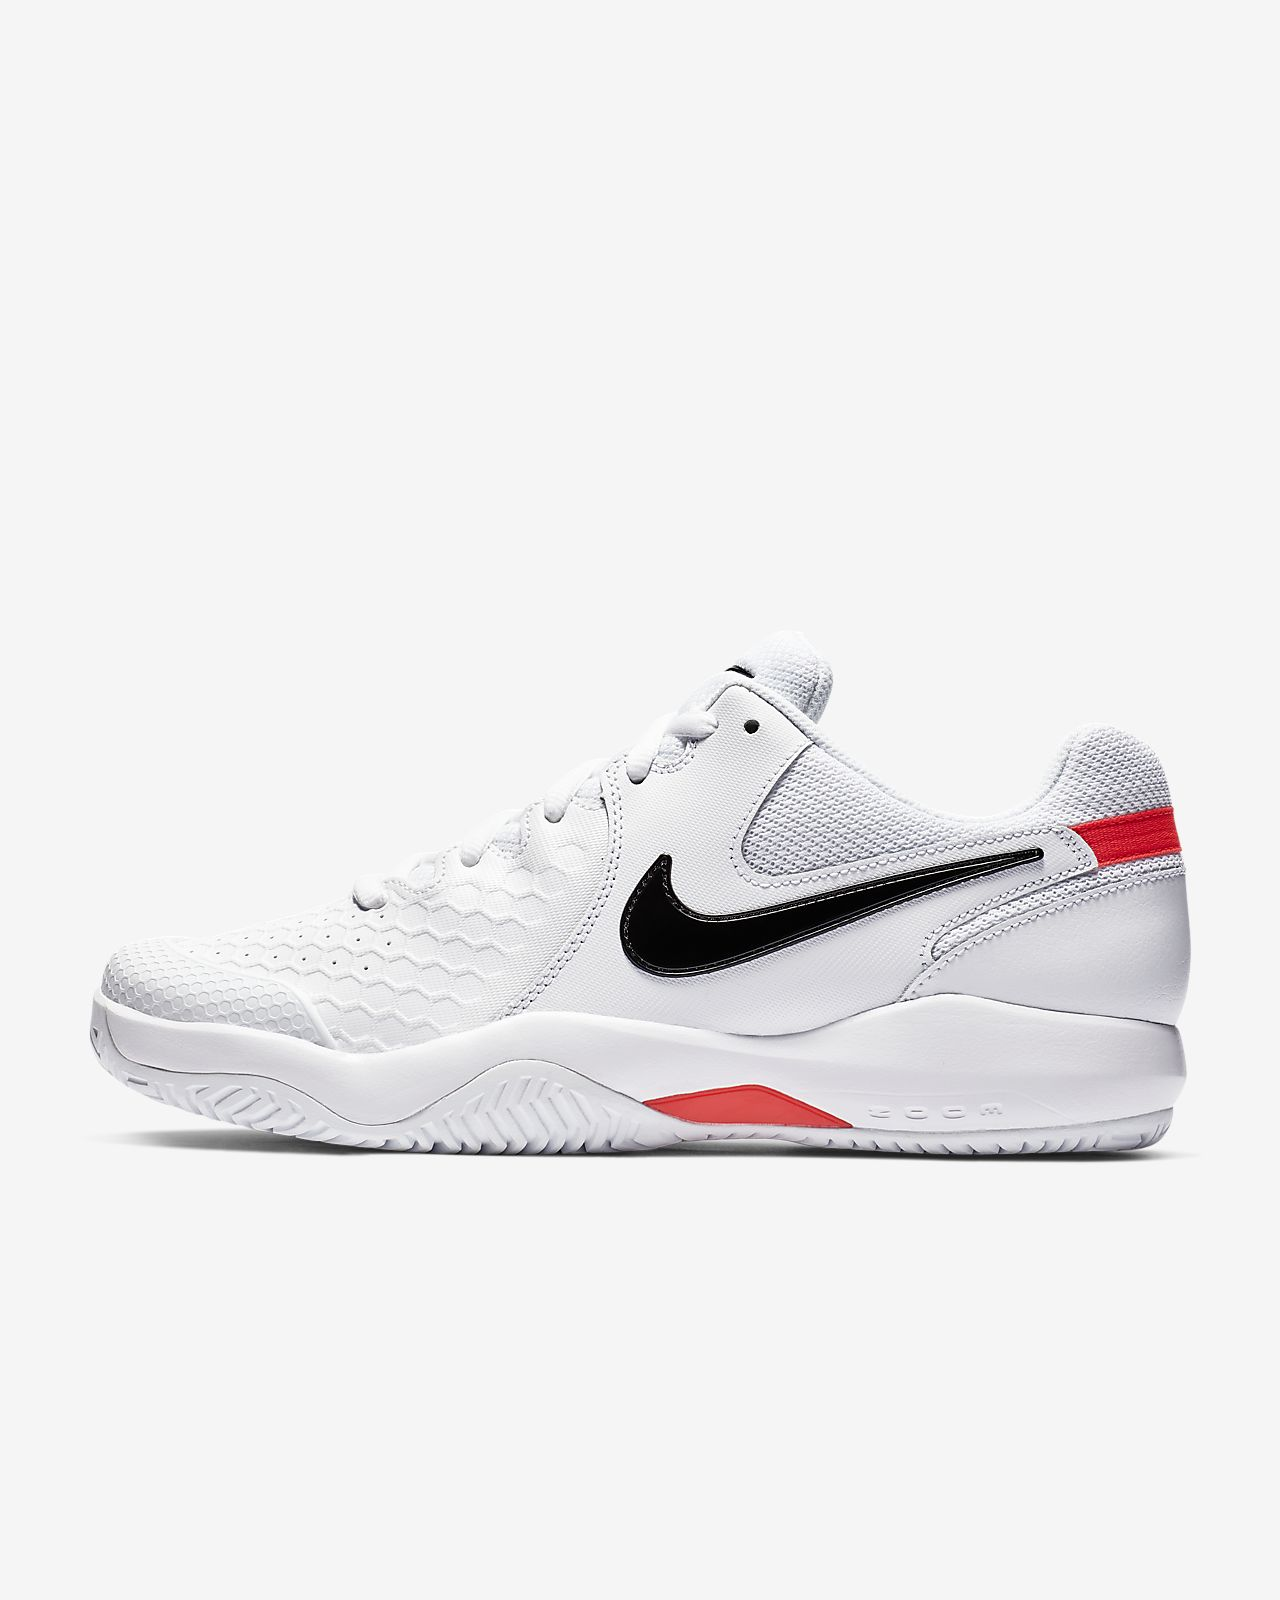 46e551f1760a NikeCourt Air Zoom Resistance Men s Hard Court Tennis Shoe. Nike.com